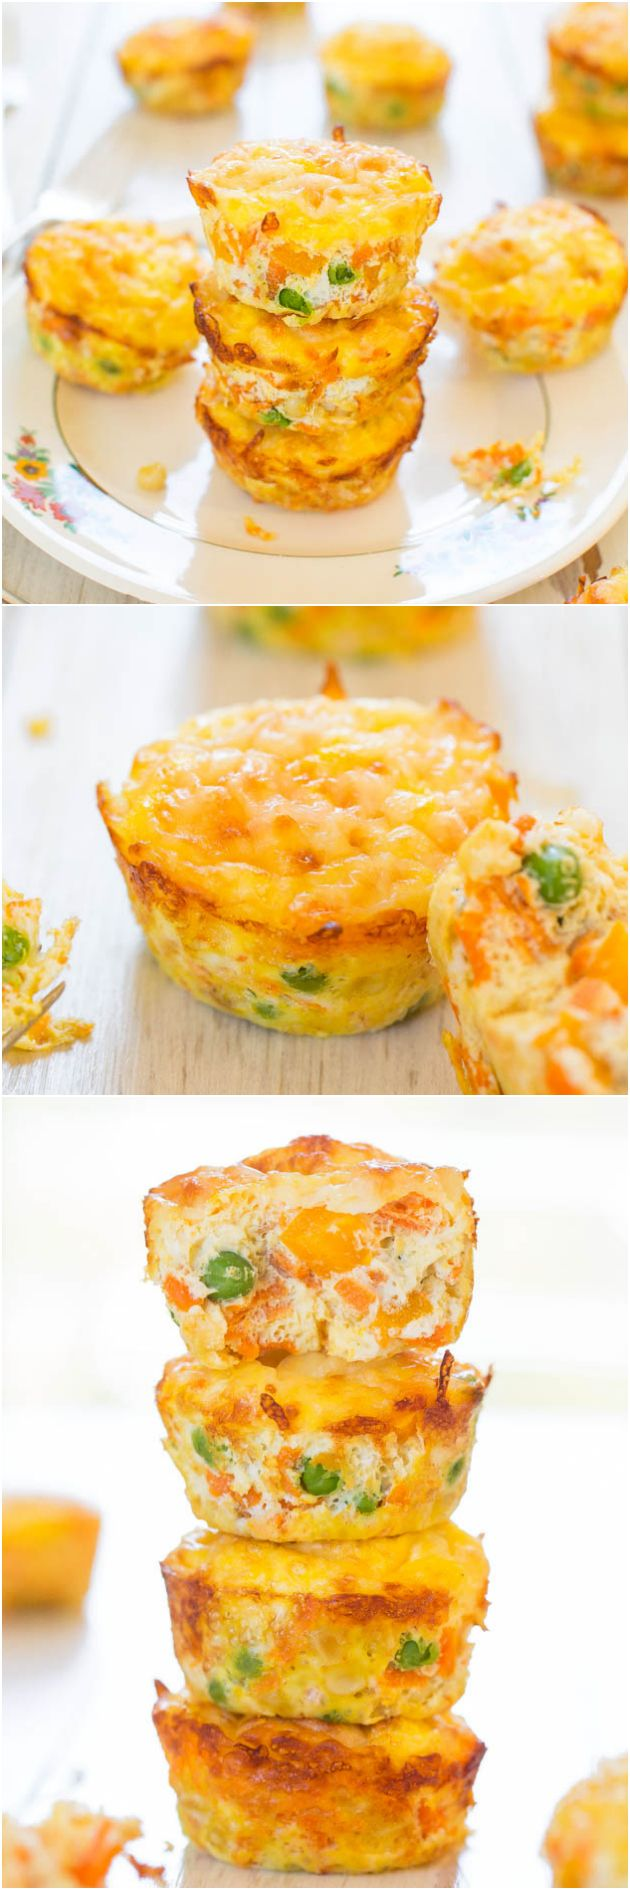 Egg wholesale     Calorie Vegetable   fashion  Muffins sunglasses and and Cheese      Muffins  Egg Vegetables Calories